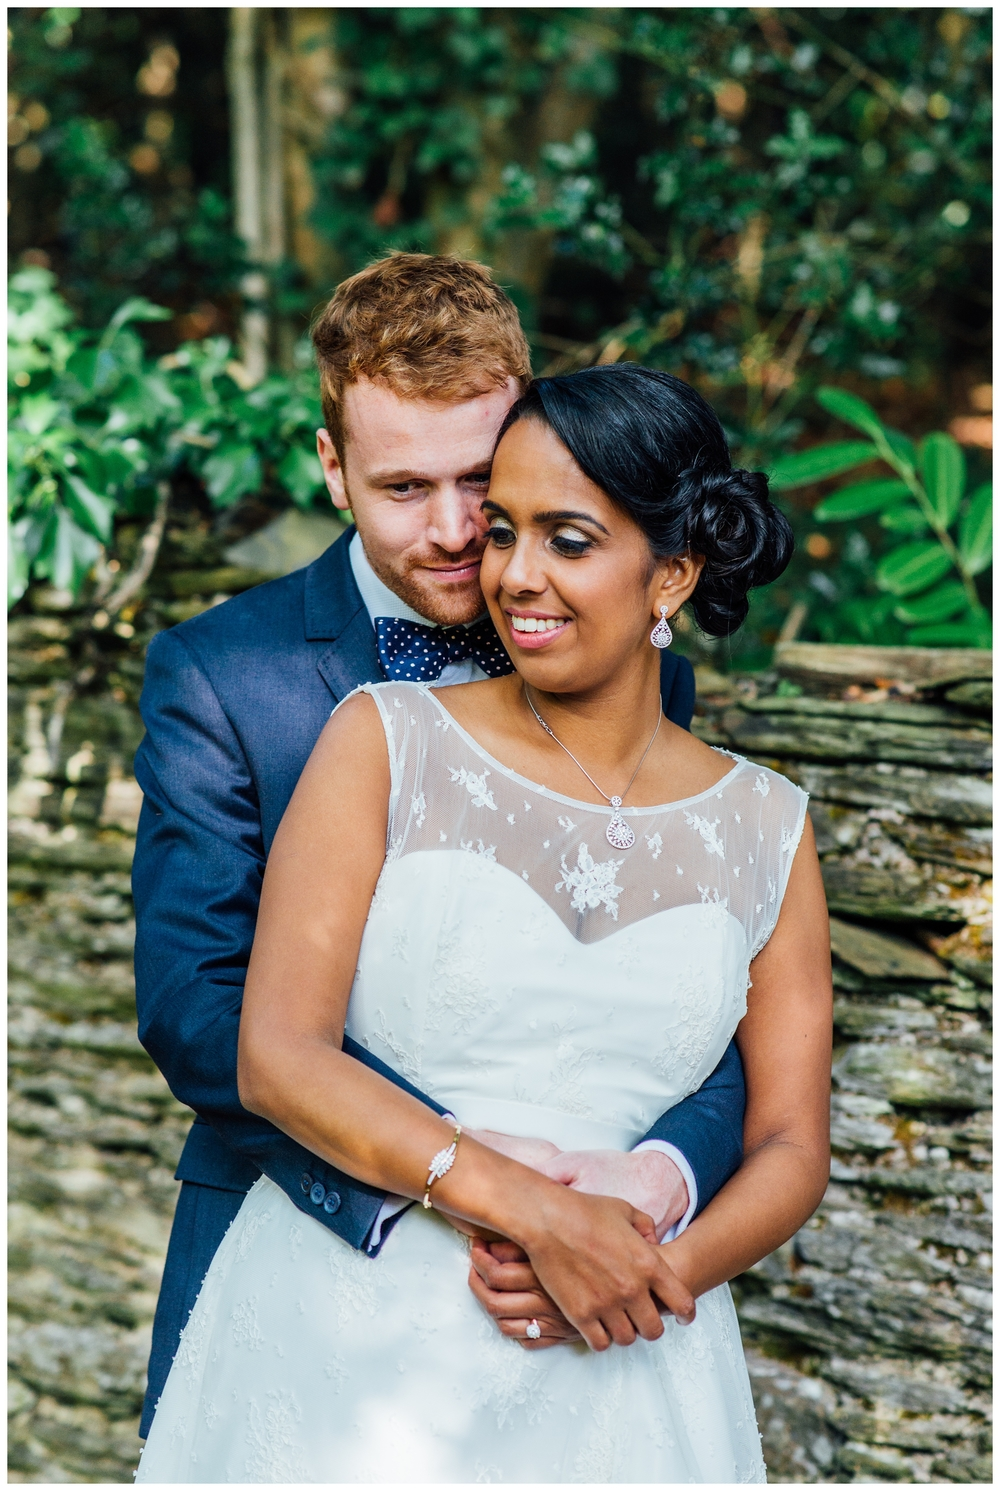 Rich&Dhikshana_Lupton_House_Devon_Hindu_English_Fushion_Wedding_0034.jpg